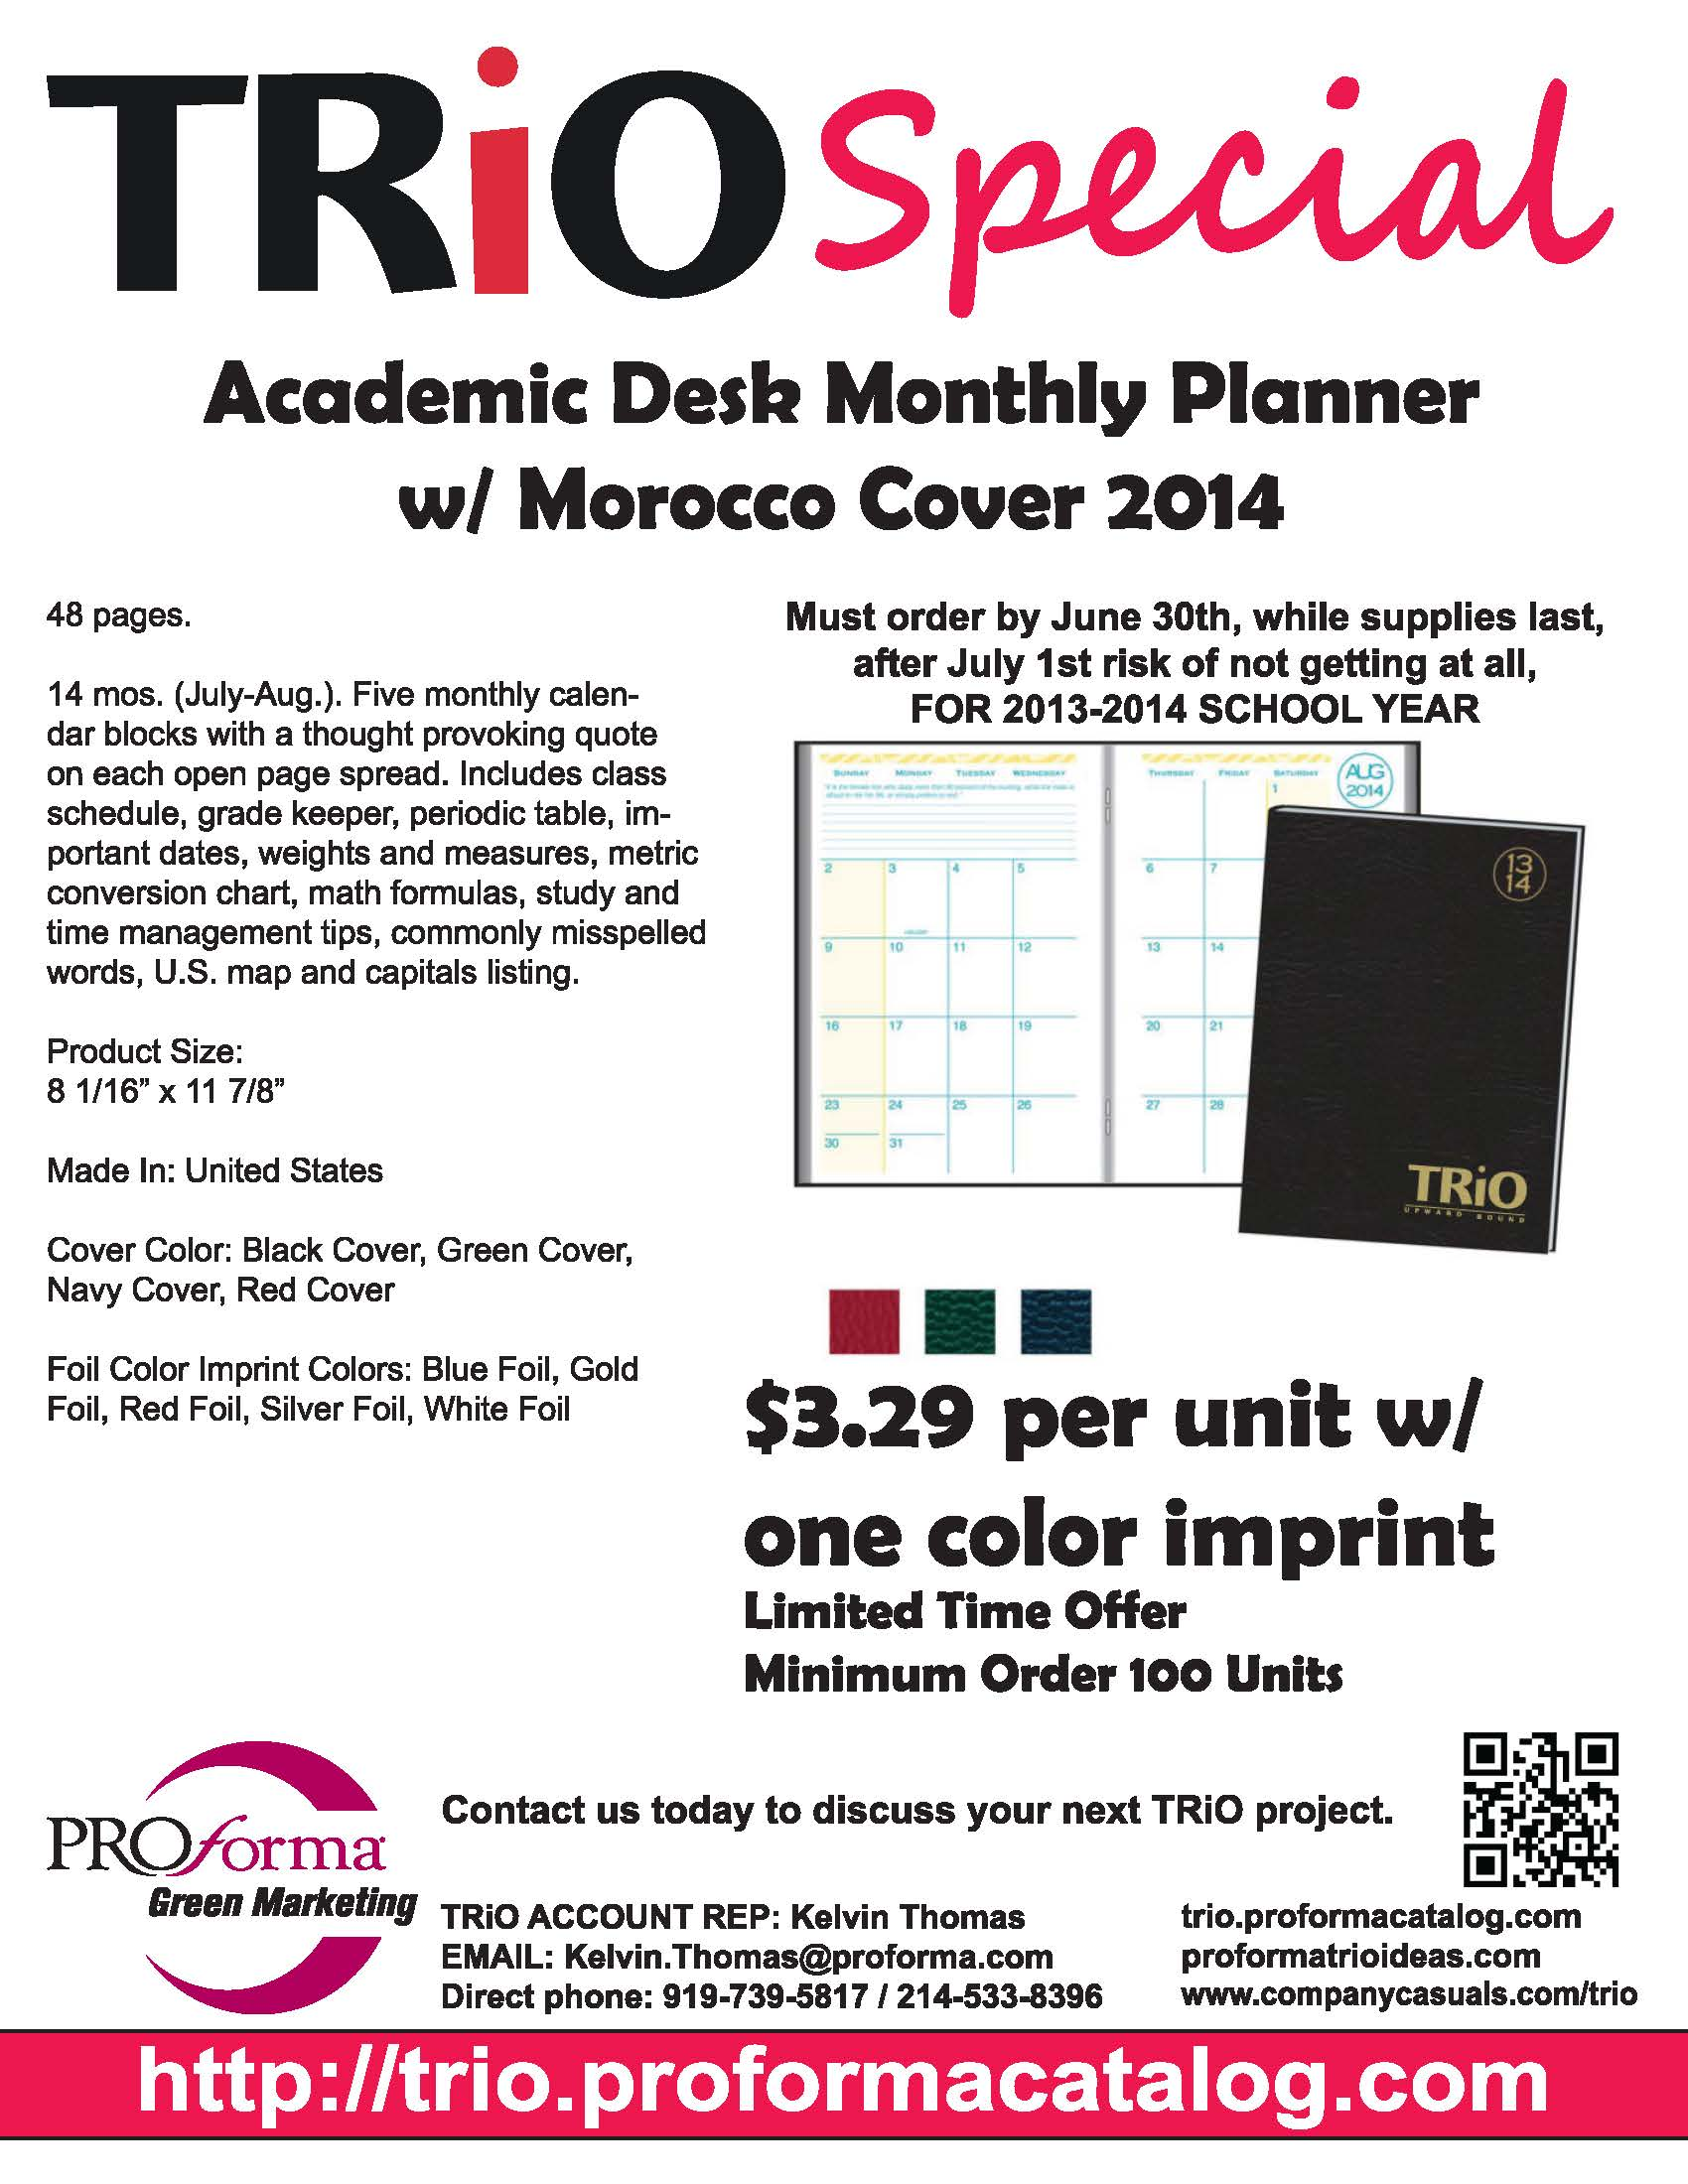 Trio Special Academic Desk Monthly Planner Proforma Trio Ideas